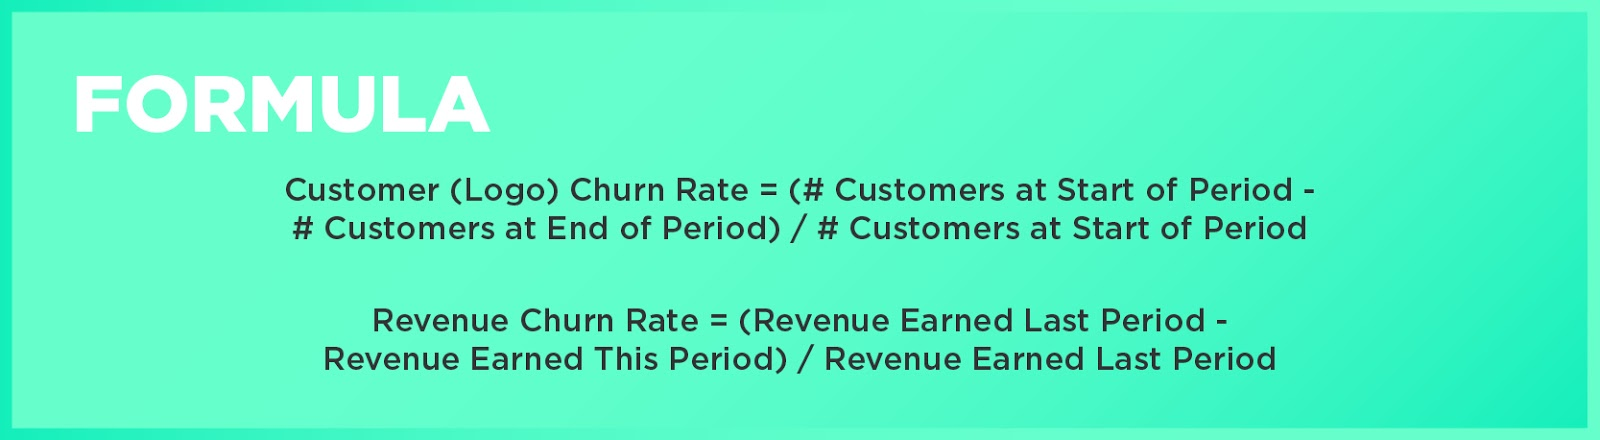 Formula: Customer (Logo) Churn Rate = (# Customers at Start of Period - # Customers at End of Period) / # Customers at Start of PeriodRevenue Churn Rate = (Revenue Earned Last Period - Revenue Earned This Period) / Revenue Earned Last Period